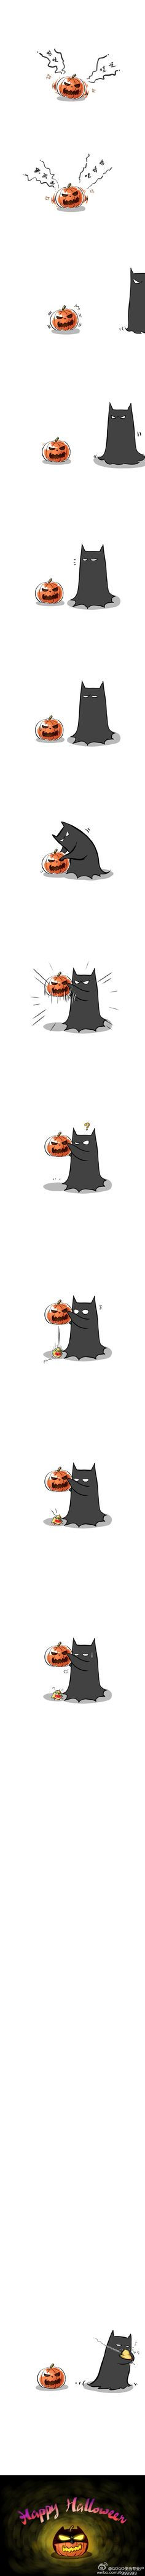 Fact #WhoCares: Did you know... Batman is able to scare the shit out of inanimate objects as well as living beings?